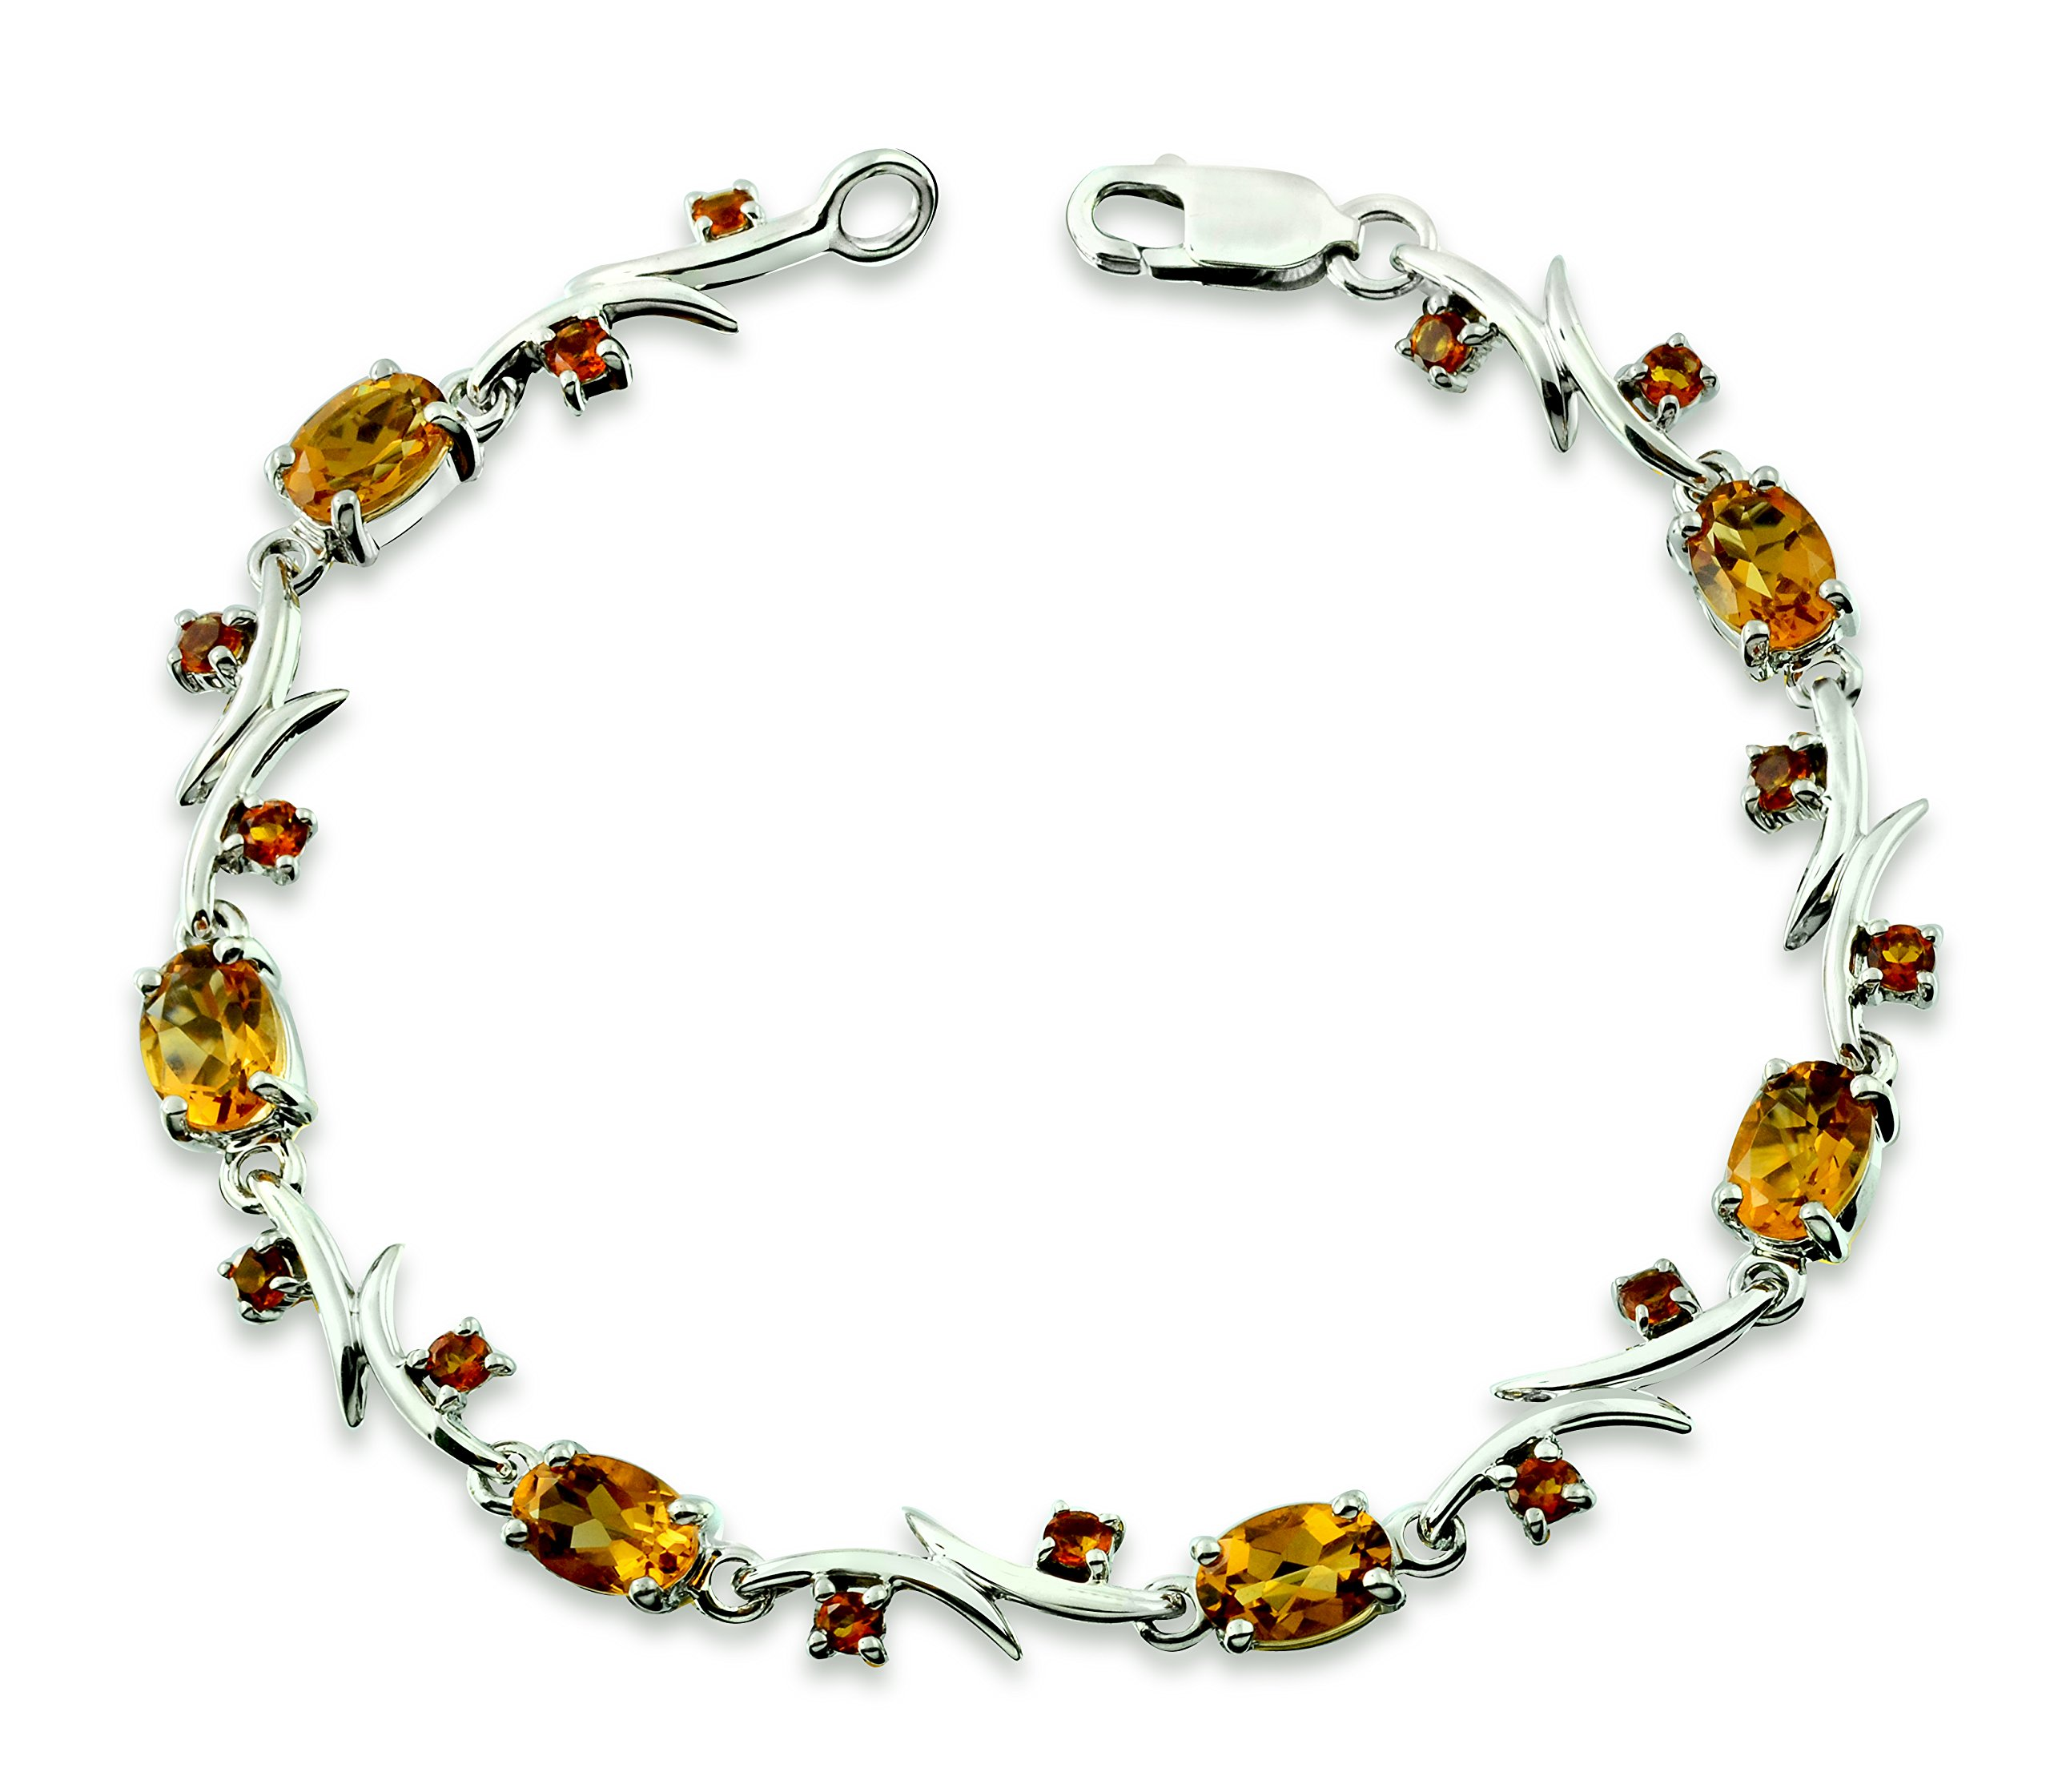 """RB Gems Sterling Silver 925 Tennis Bracelet Genuine Gemstone 5 Carats with Rhodium-Plated Finish, 7"""" Long (Citrine) by RB Gems (Image #1)"""